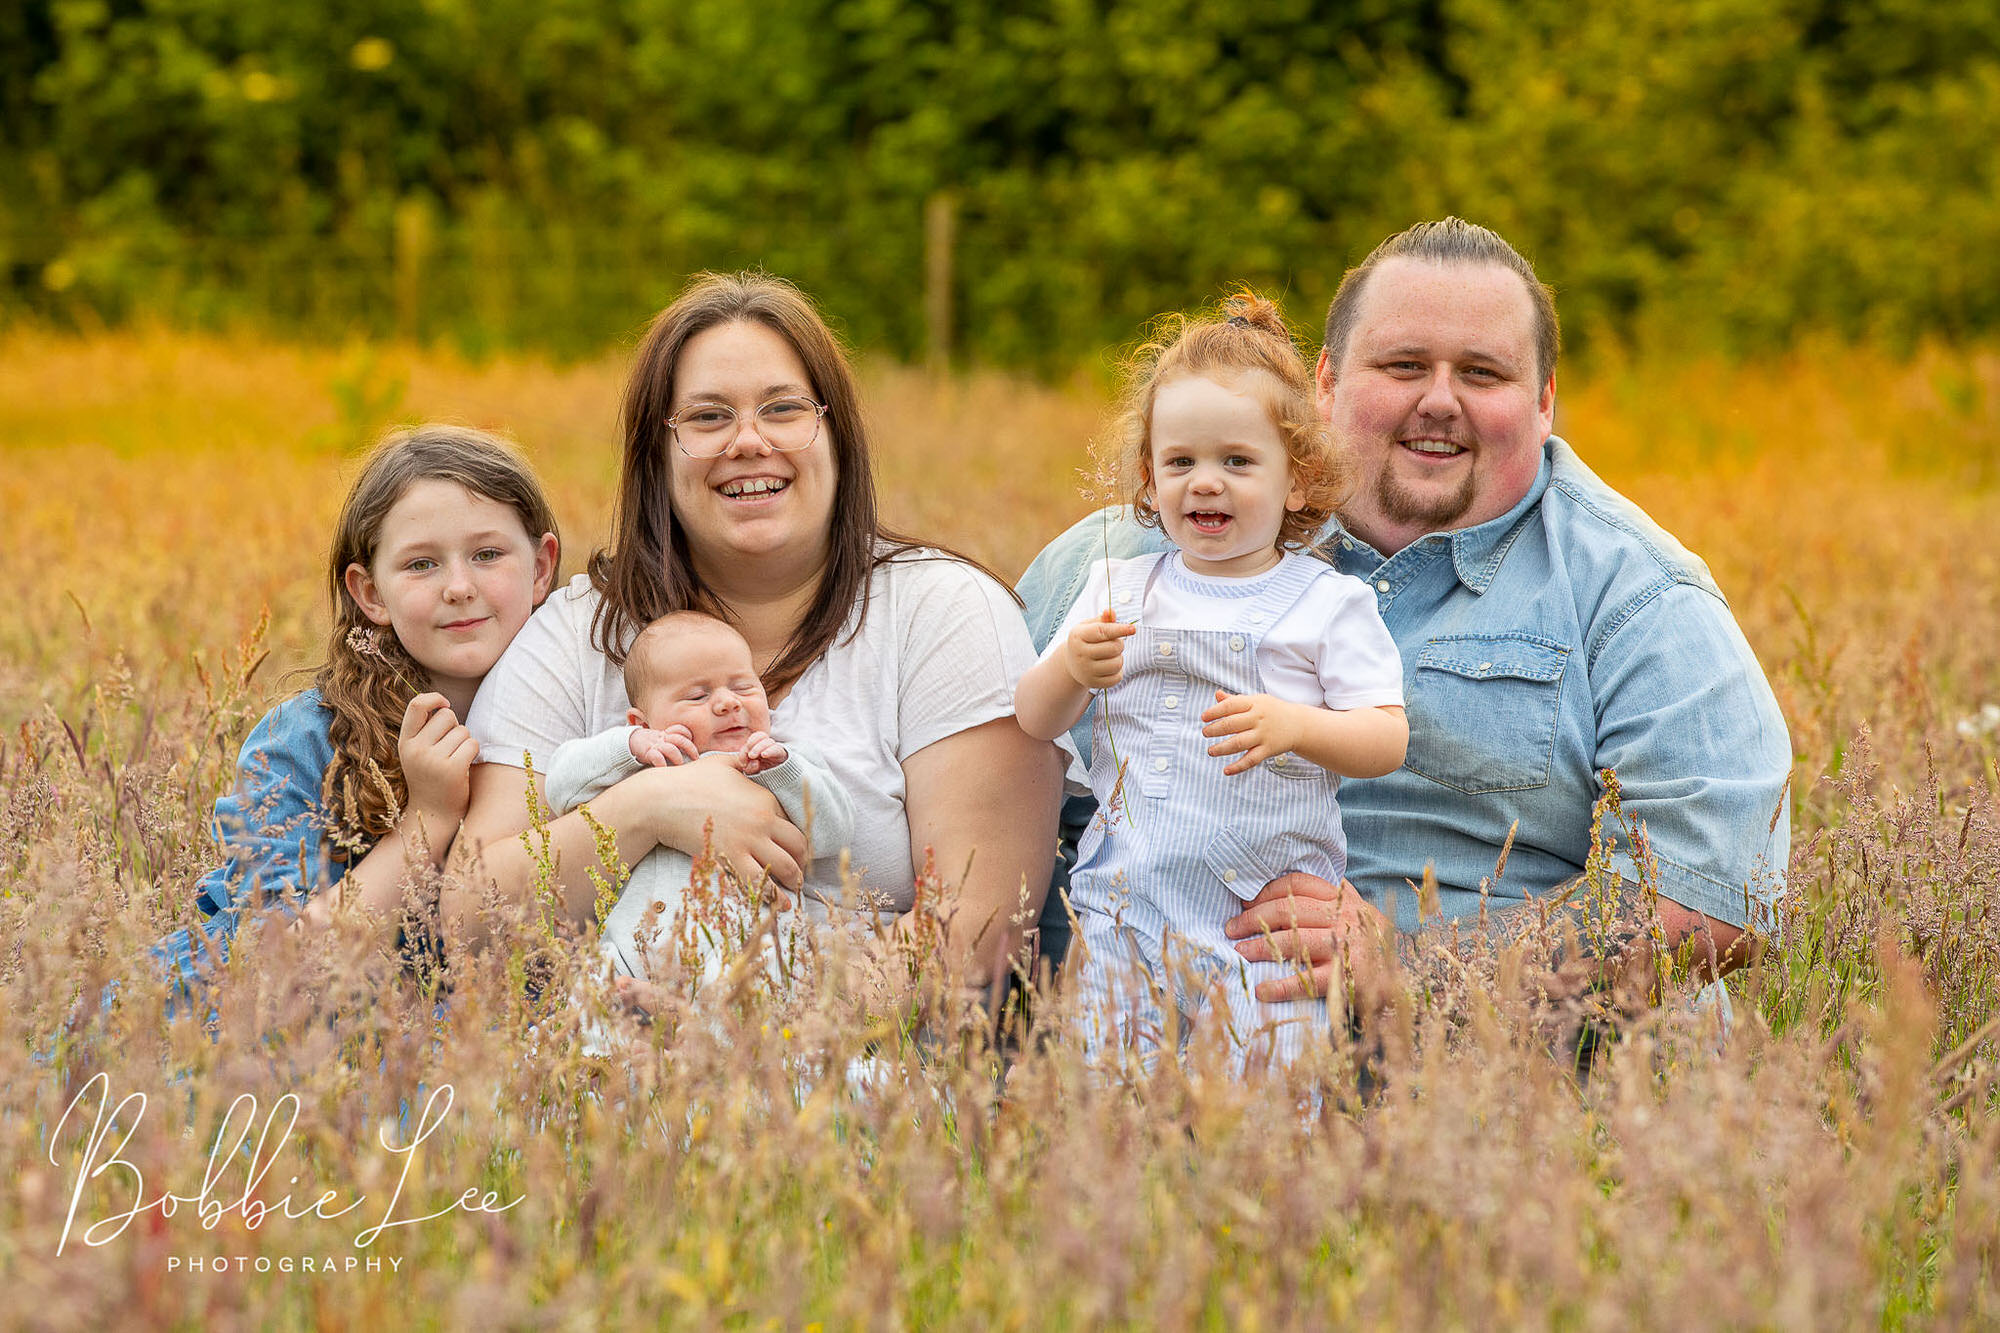 RL40201-Bridgend Family Photographer-0015